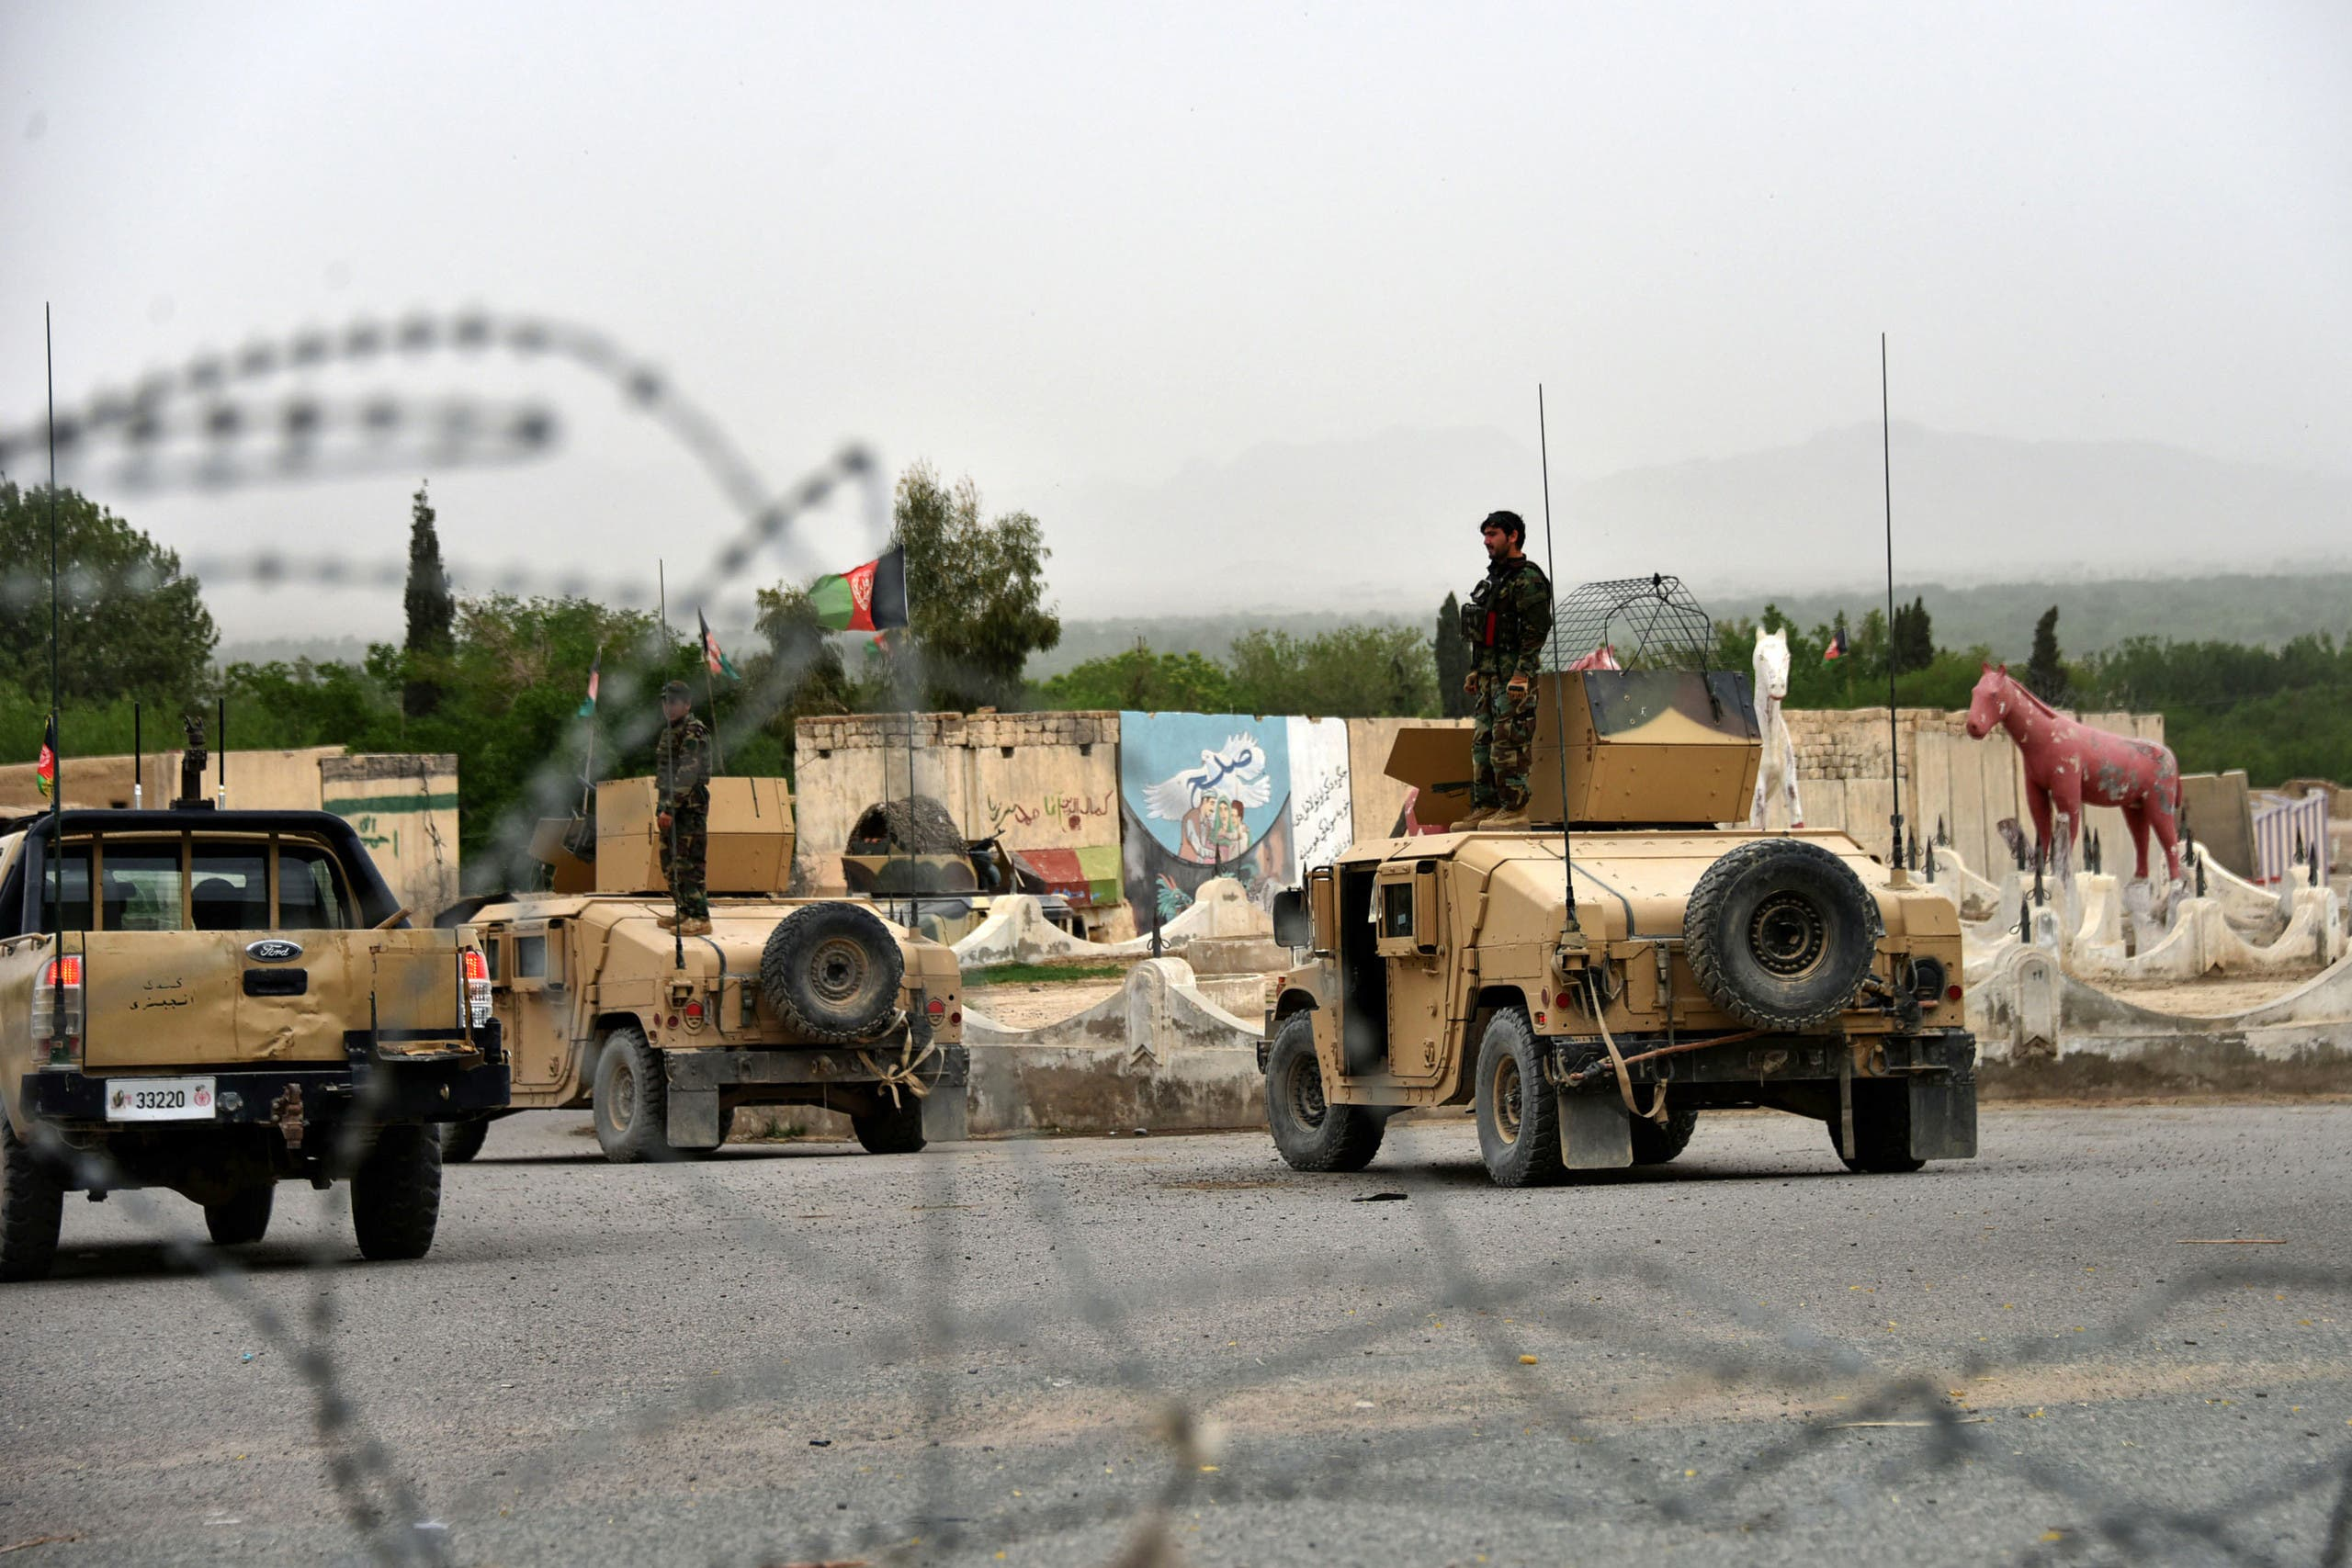 In this file photo taken on April 04, 2021 Afghan security forces stand on Humvee vehicles during a military operation in Arghandab district of Kandahar province. (AFP)